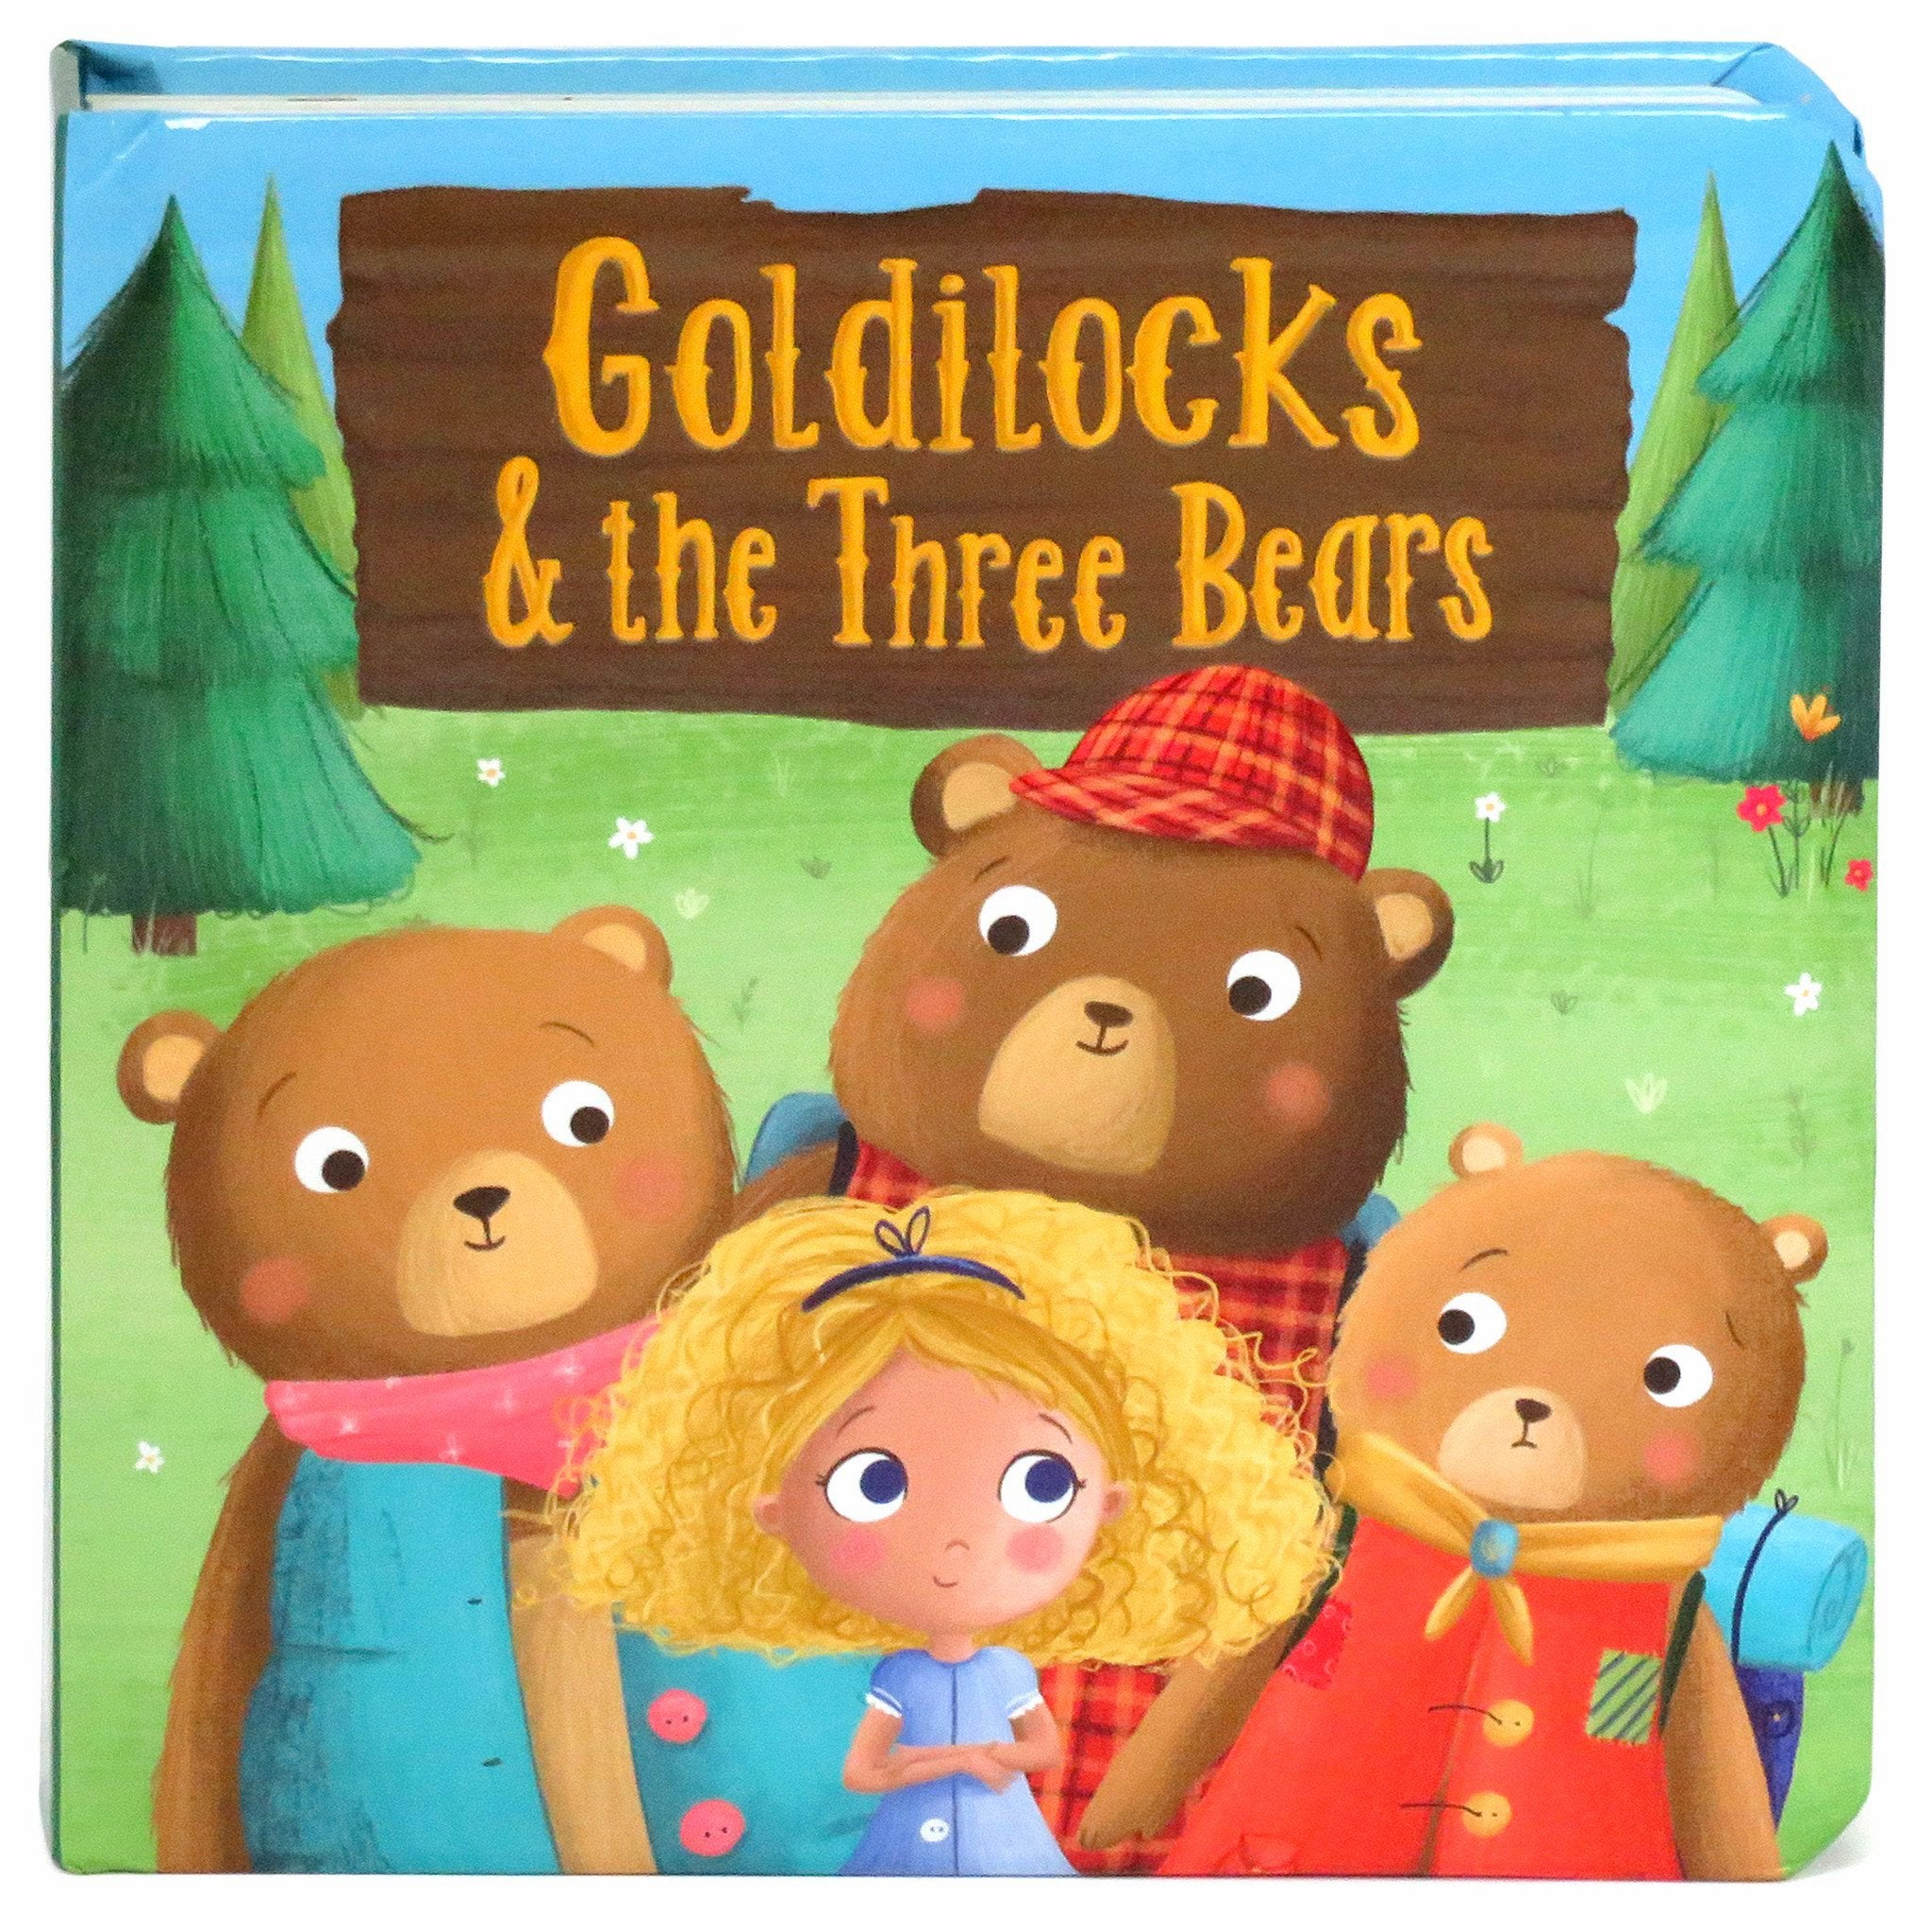 Uncategorized The Goldilocks And The Three Bears goldilocks the three bears cottage door press llc 1